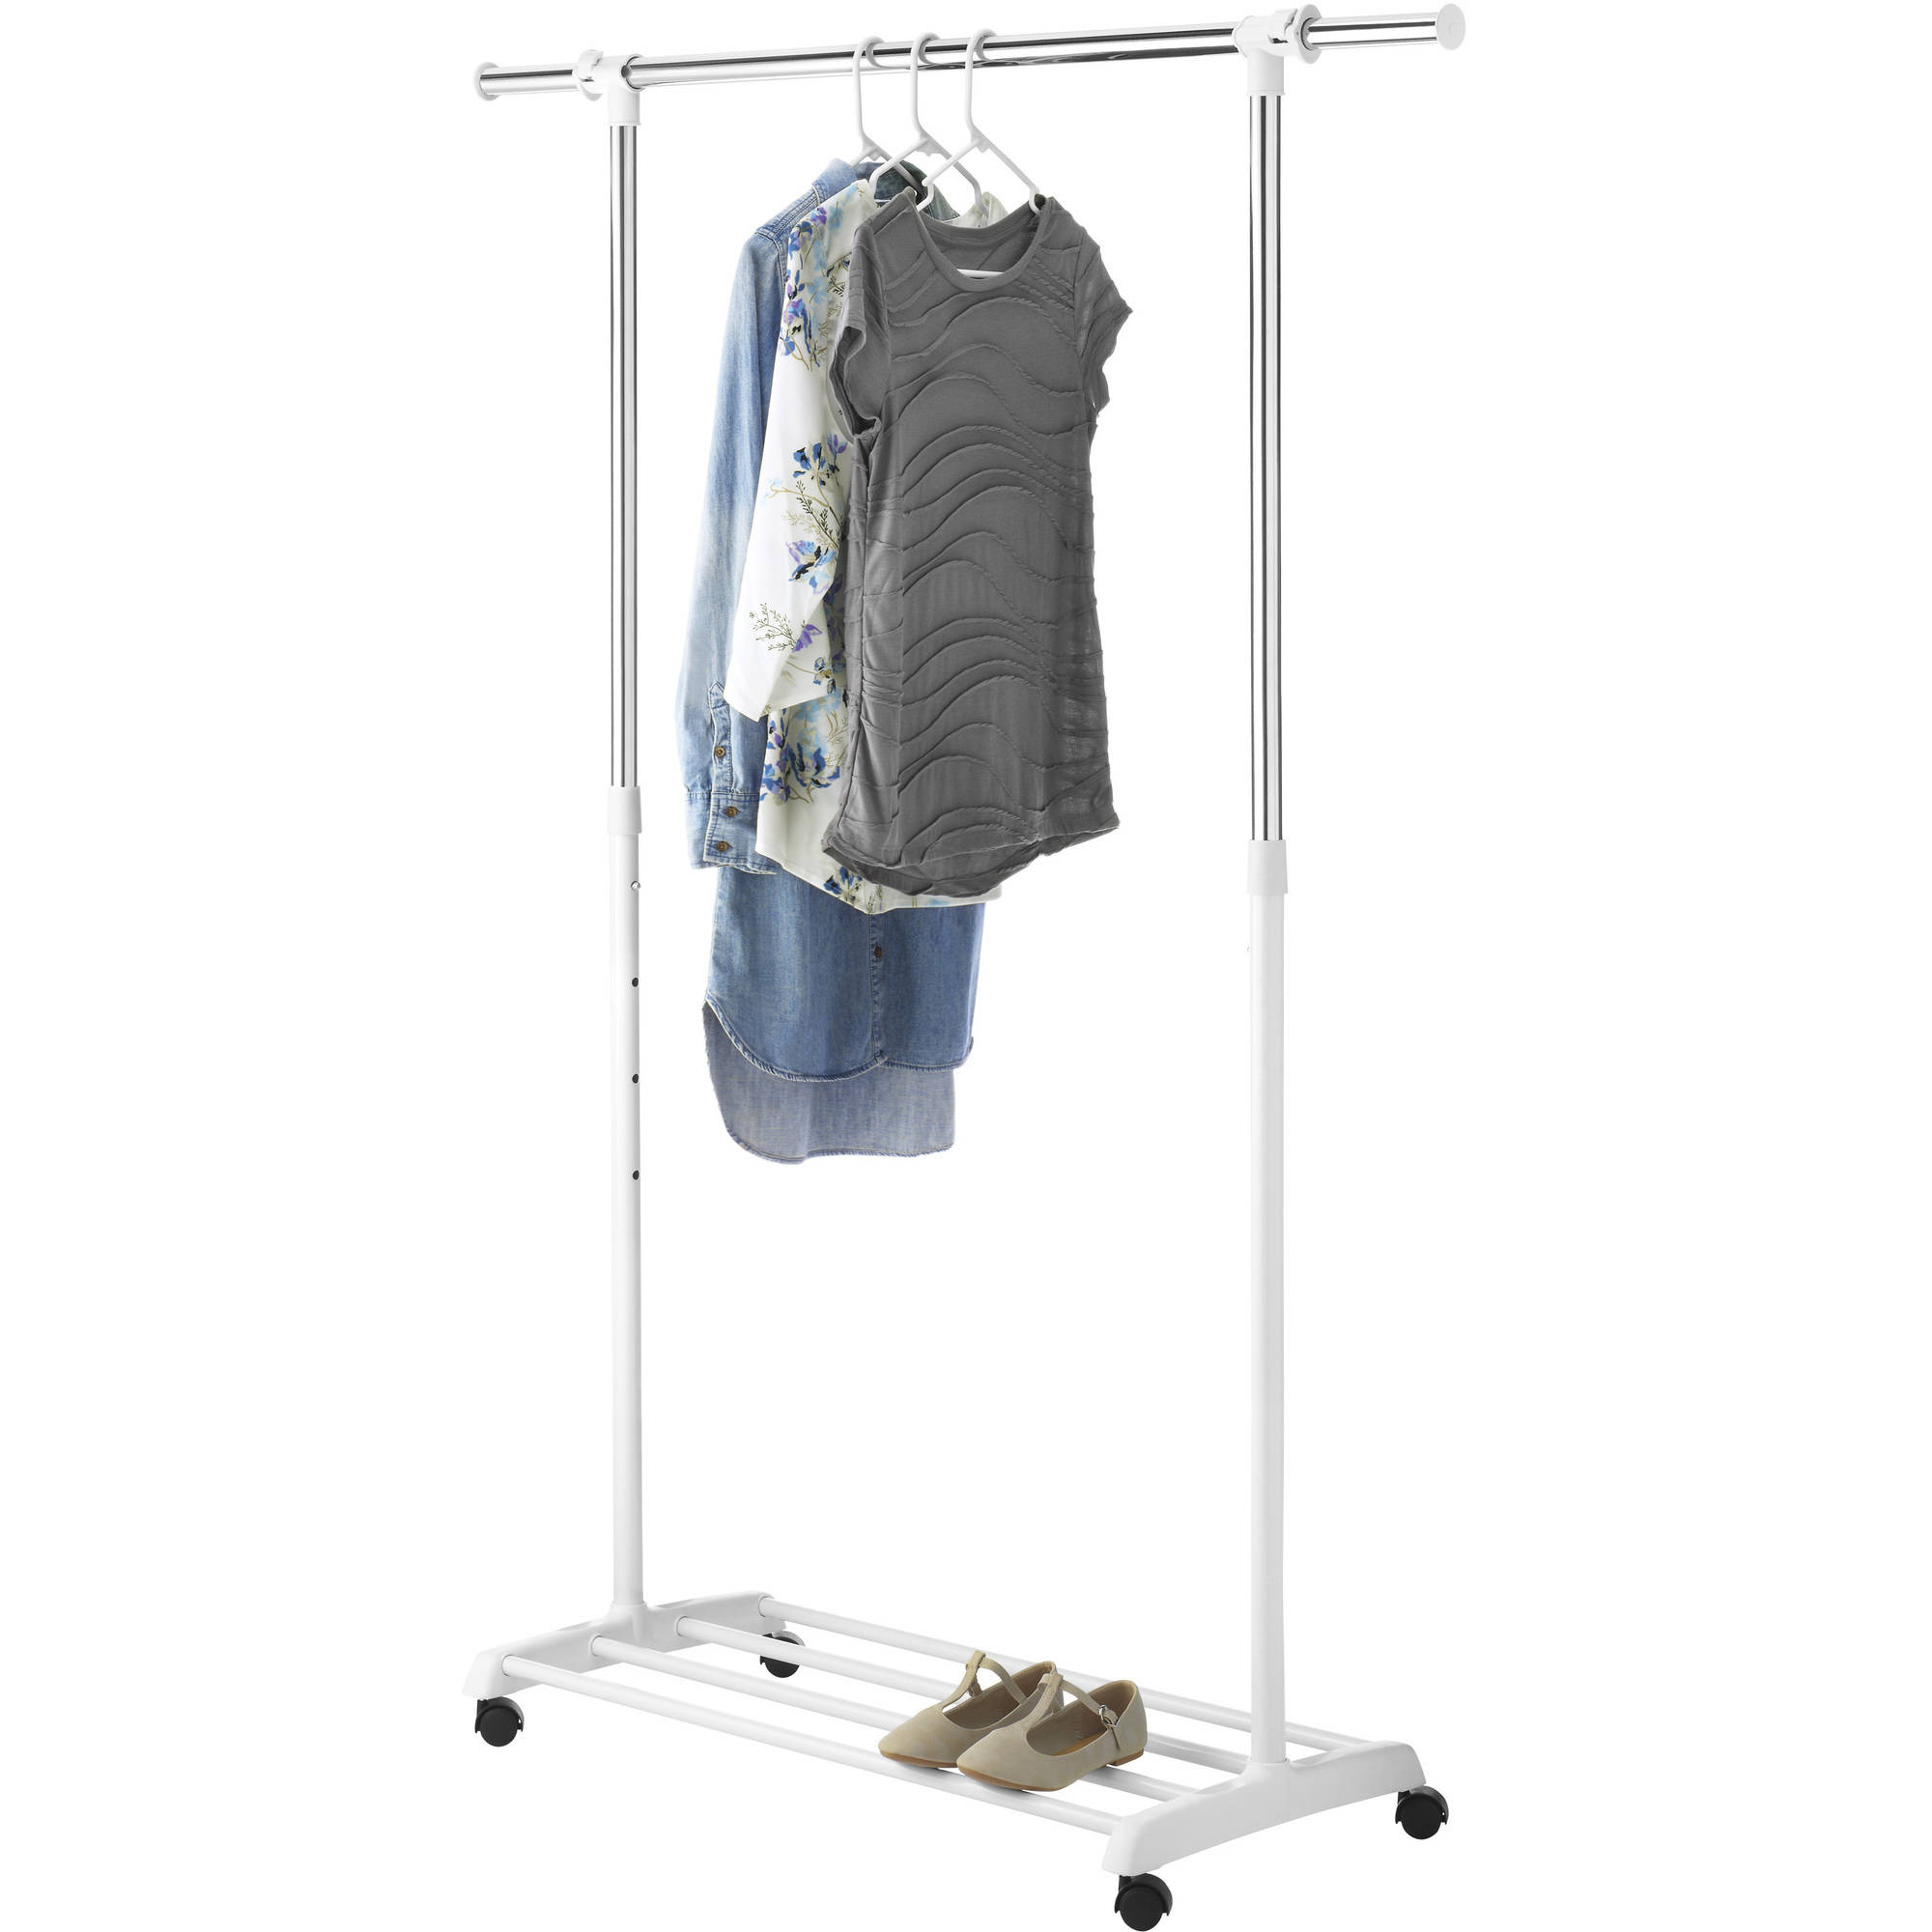 Whitmor Deluxe Adjustable Garment Rack by Whitmor